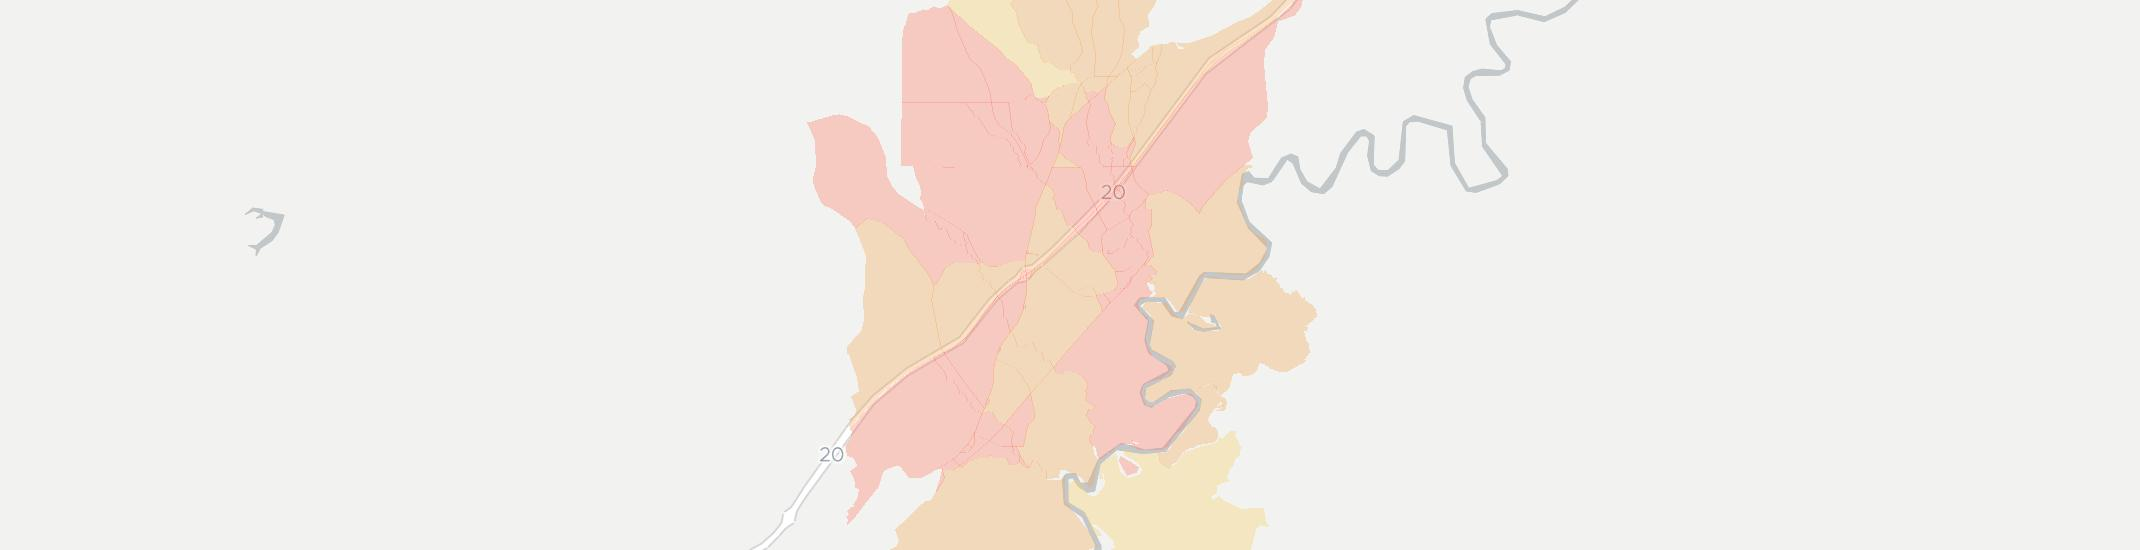 Knoxville Internet Competition Map. Click for interactive map.